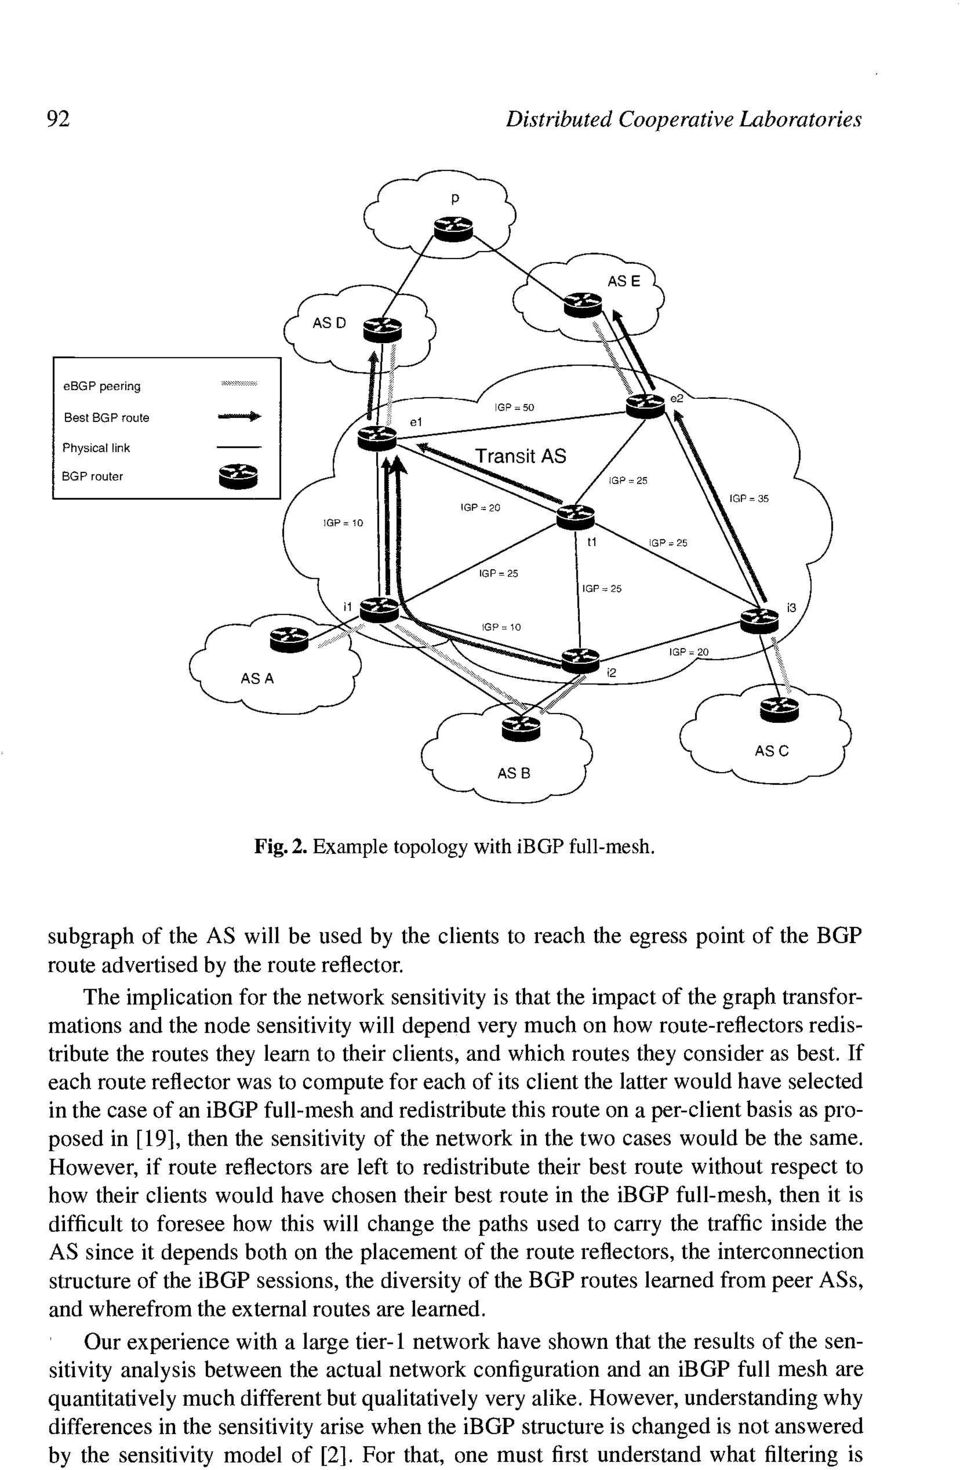 The implication for the network sensitivity is that the impact of the graph transformations and the node sensitivity will depend very much on how route-reflectors redistribute the routes they learn